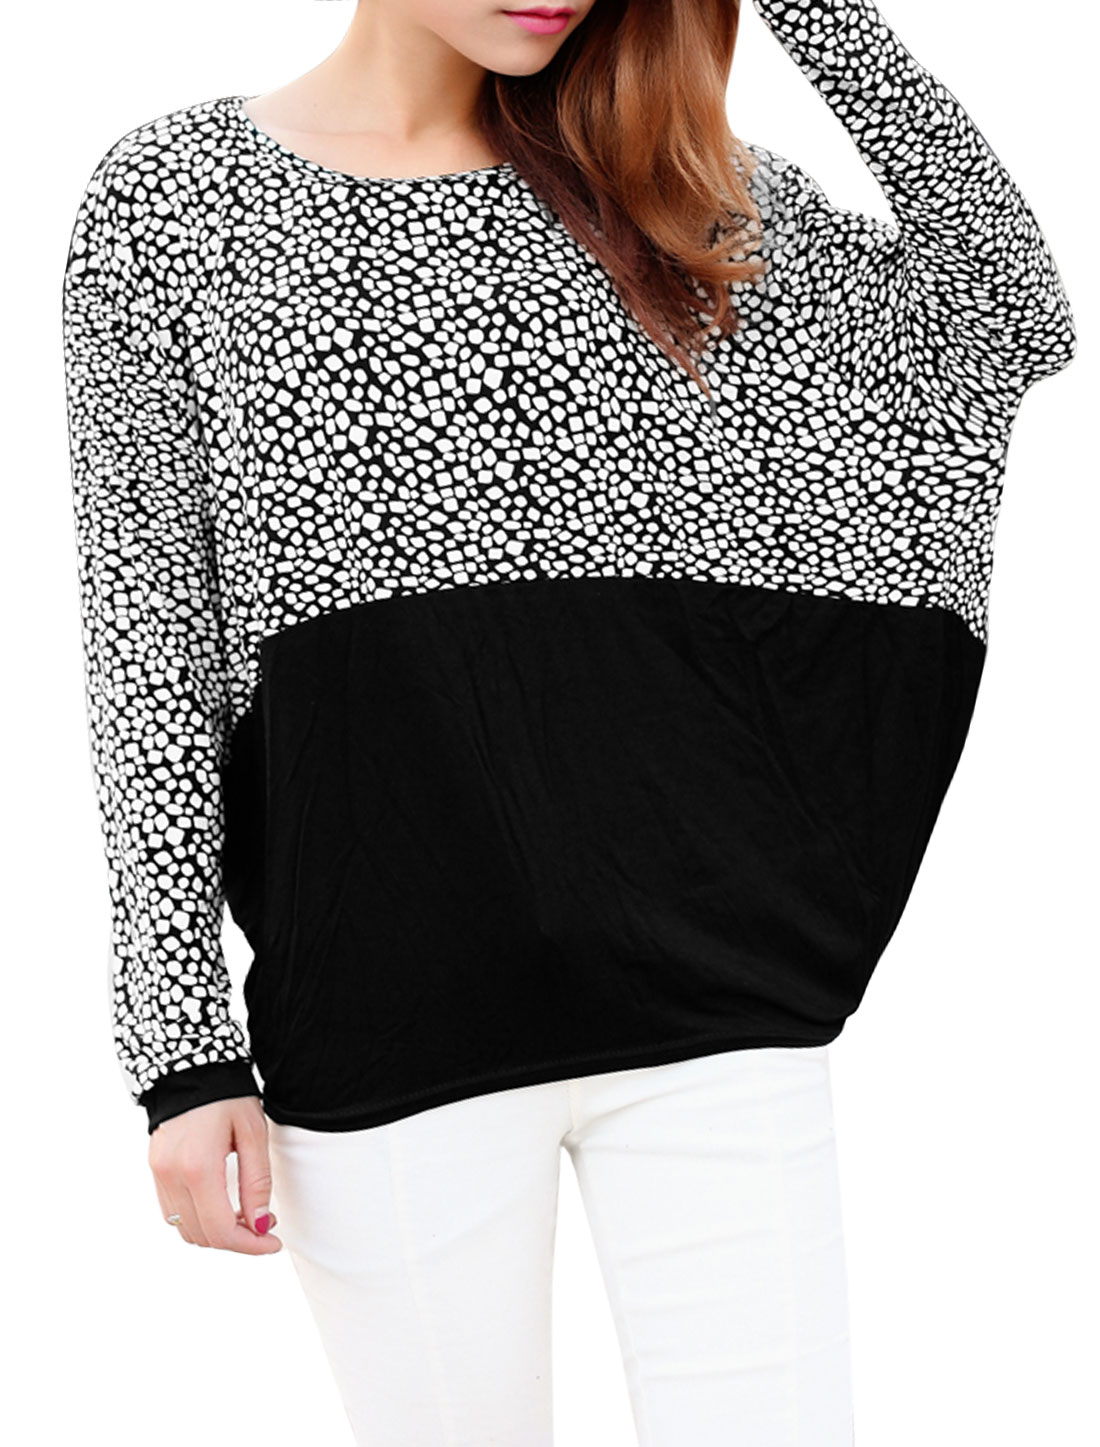 Women Geometric Prints Round Neck Batwing Sleeve Loose Top Beige Black XS